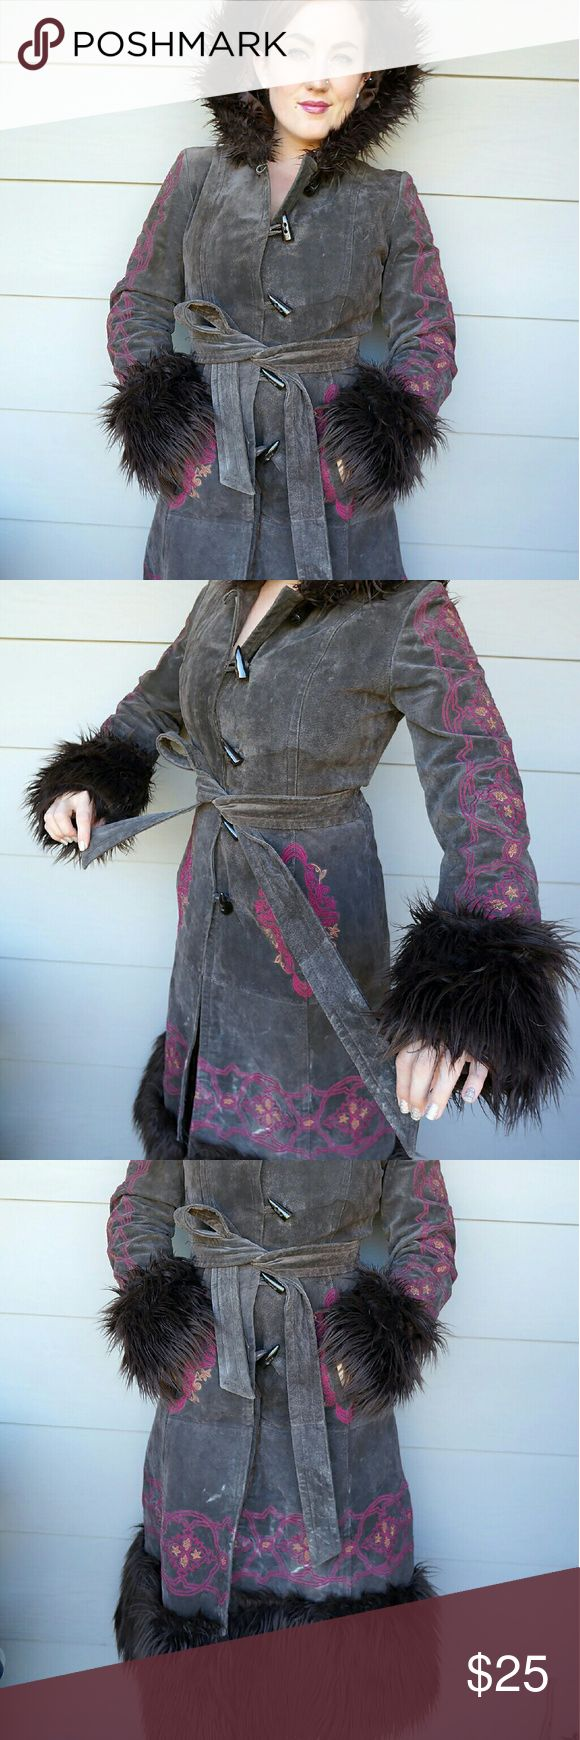 Charlotte Russe Leather hooded trench coat 100% leather hooded jacket with embroidery and faux fur trim, used. Super warm and cute. Perfect for Burning Man or other festival that you need to keep toasty. ^_^ Charlotte Russe Jackets & Coats Trench Coats